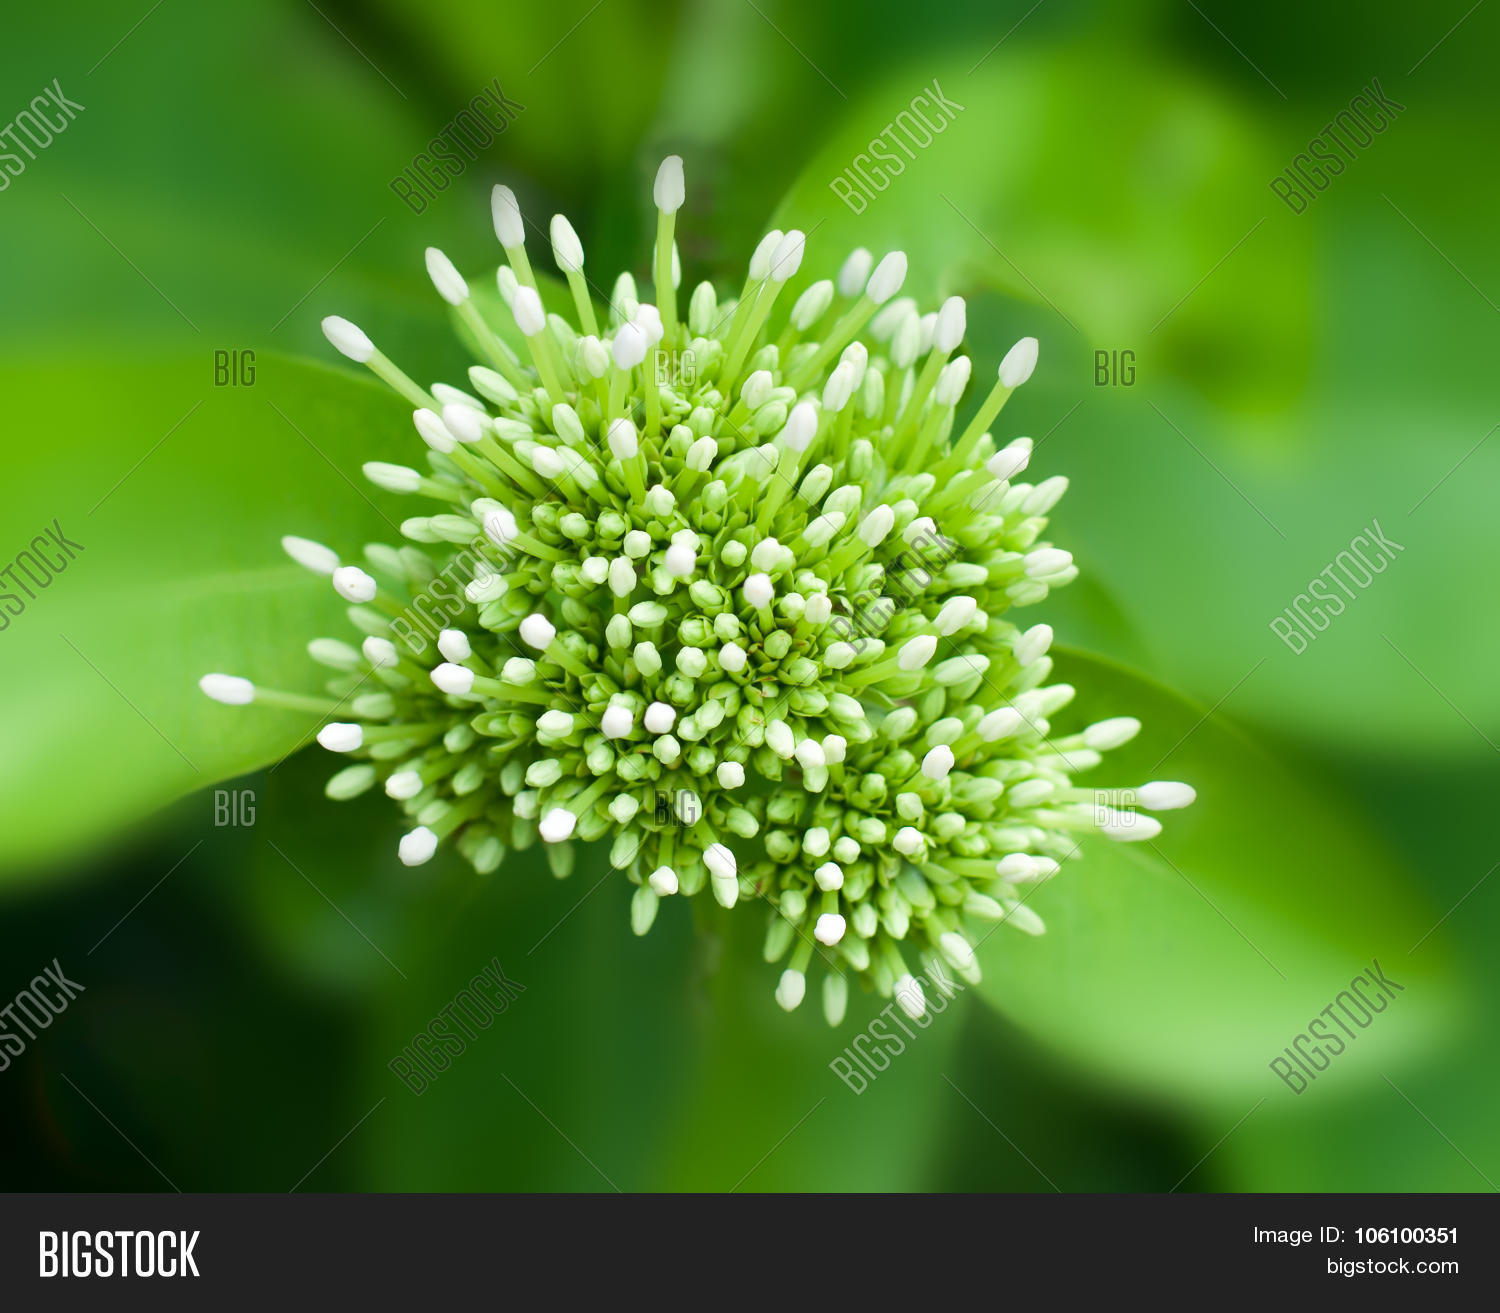 Beautiful bouquet image photo free trial bigstock beautiful bouquet of white ixoras flower west indian jasmine flower selective center focus izmirmasajfo